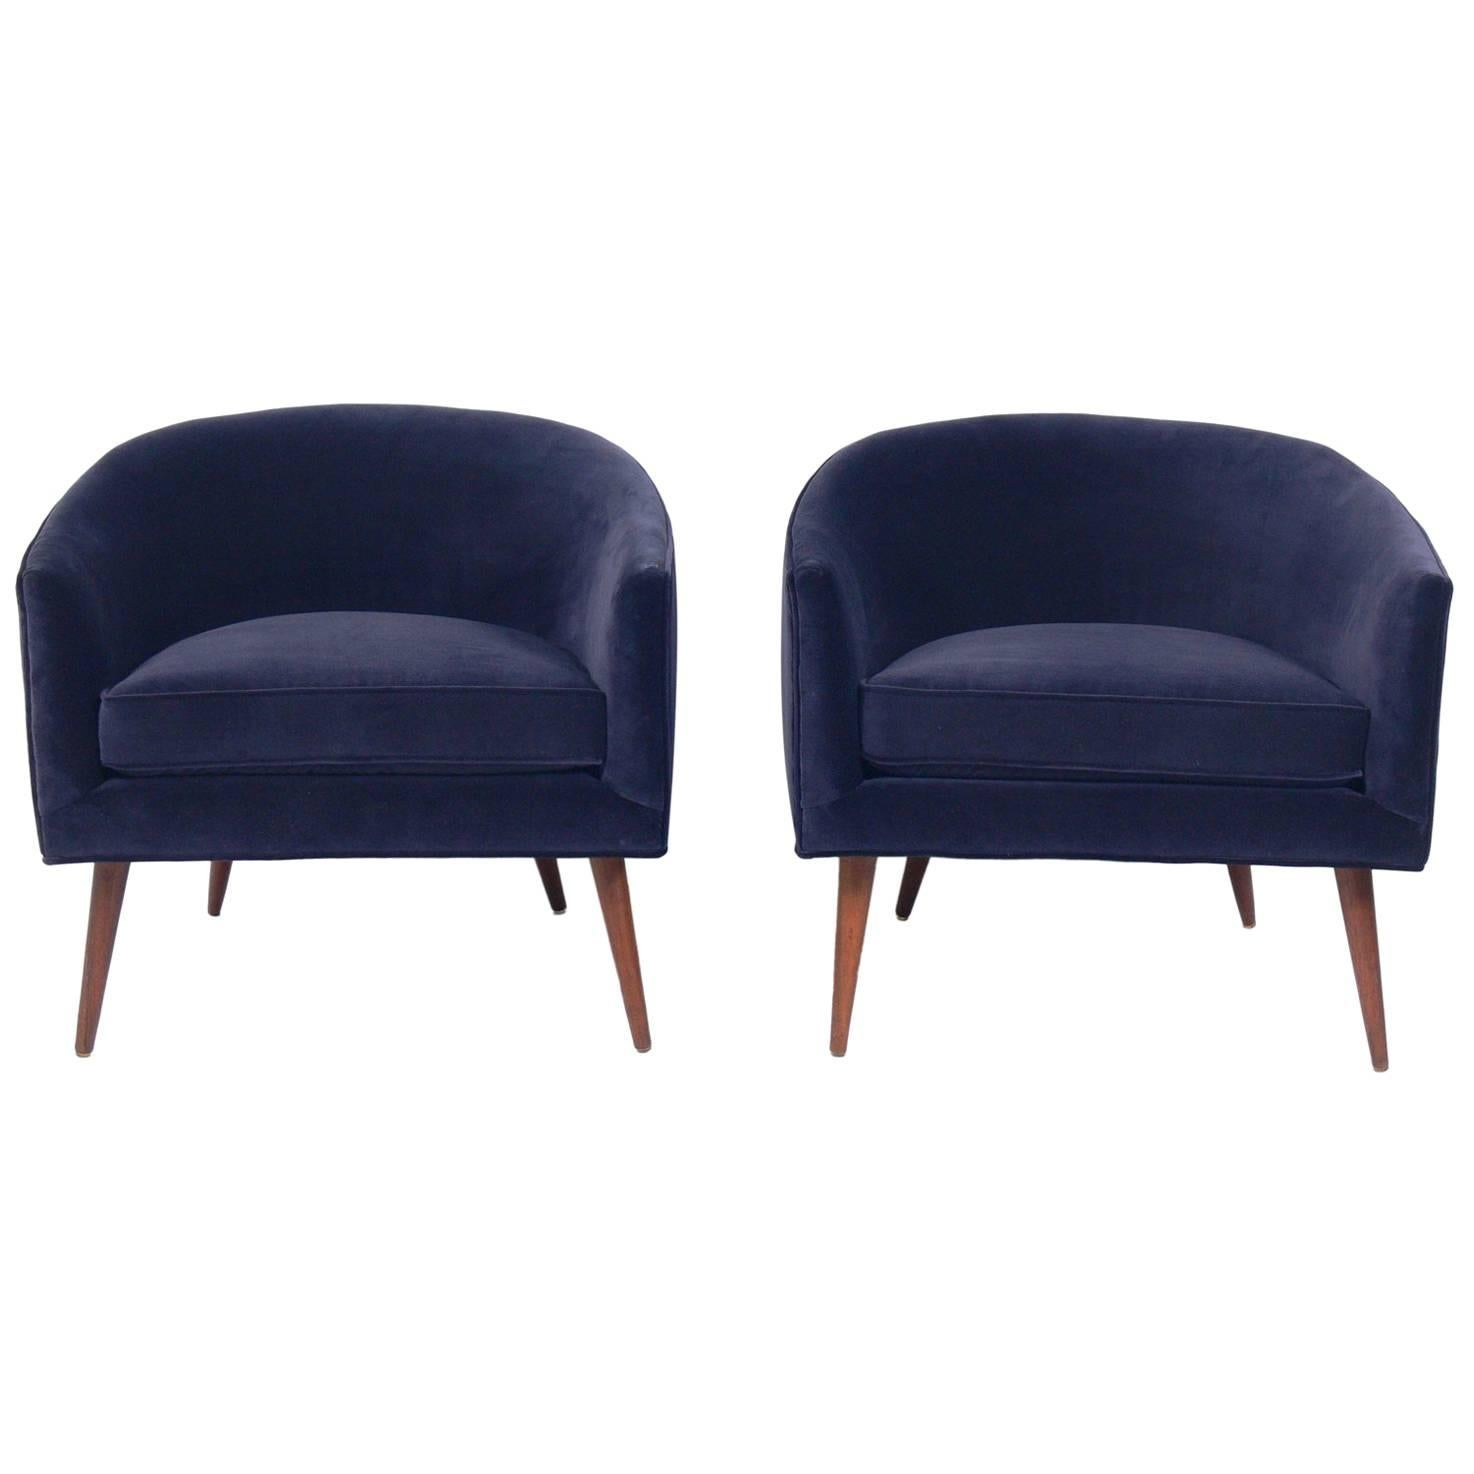 Pair of Curvaceous Midcentury Tub Chairs